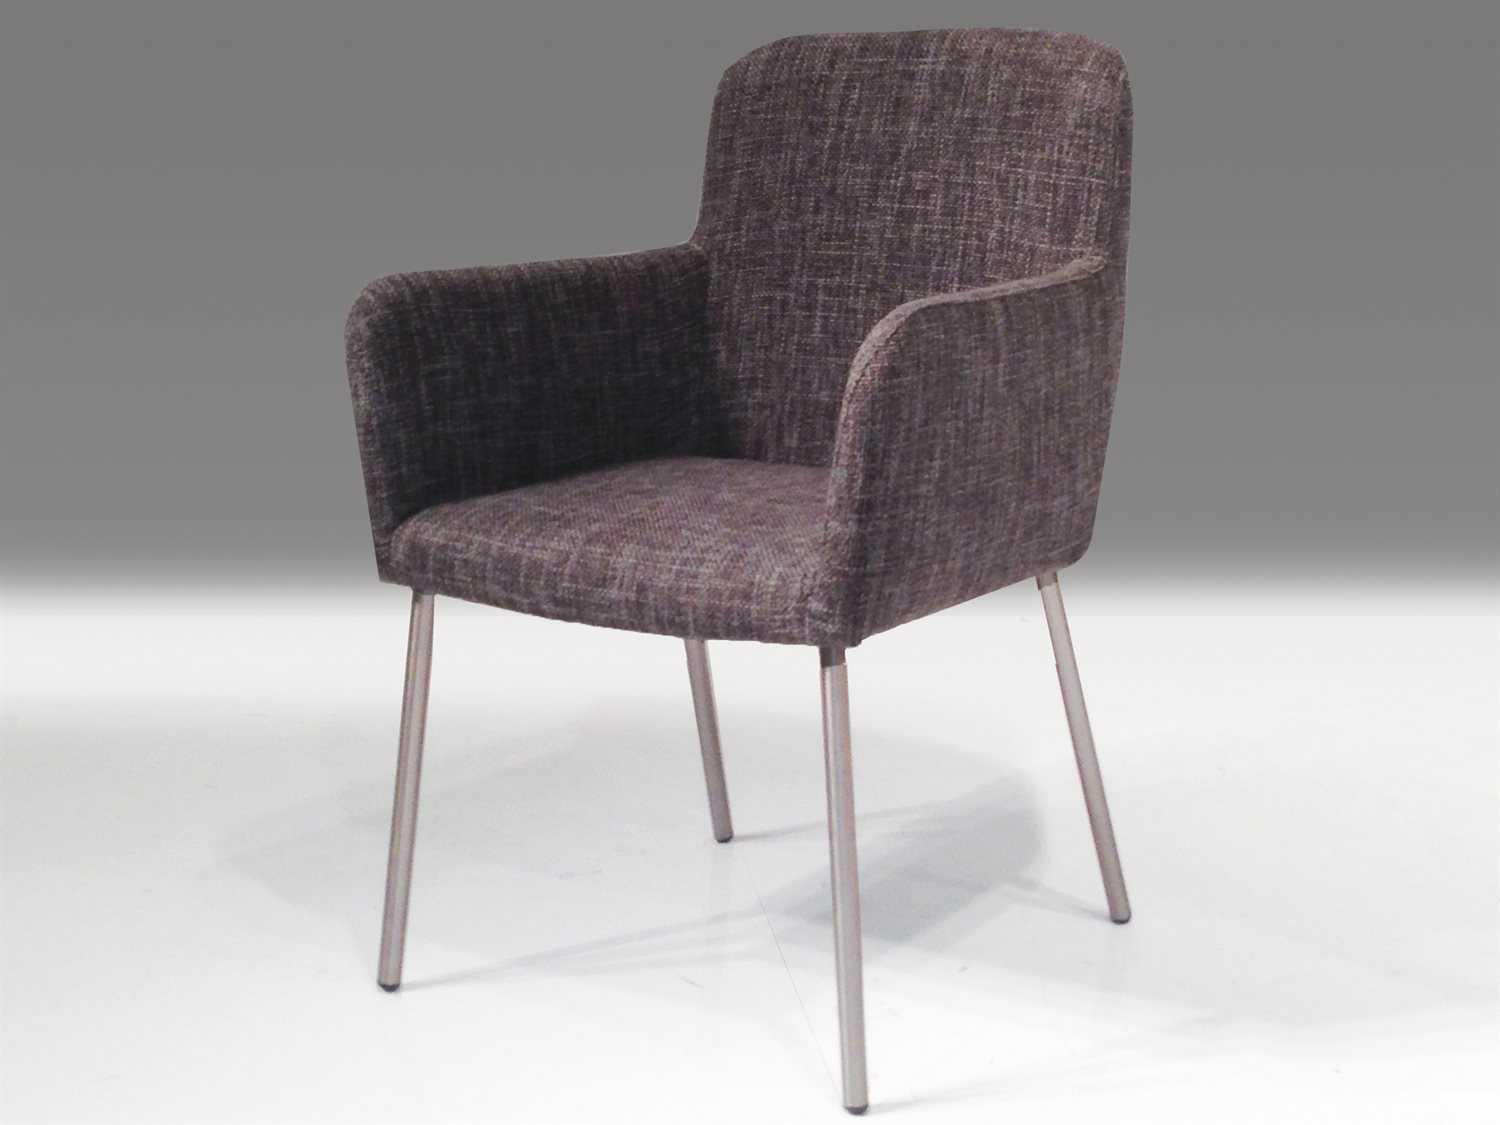 Tweed Chair Mobital Cosmo Grey Tweed Accent Arm Chair Mblchcosmgrefca117